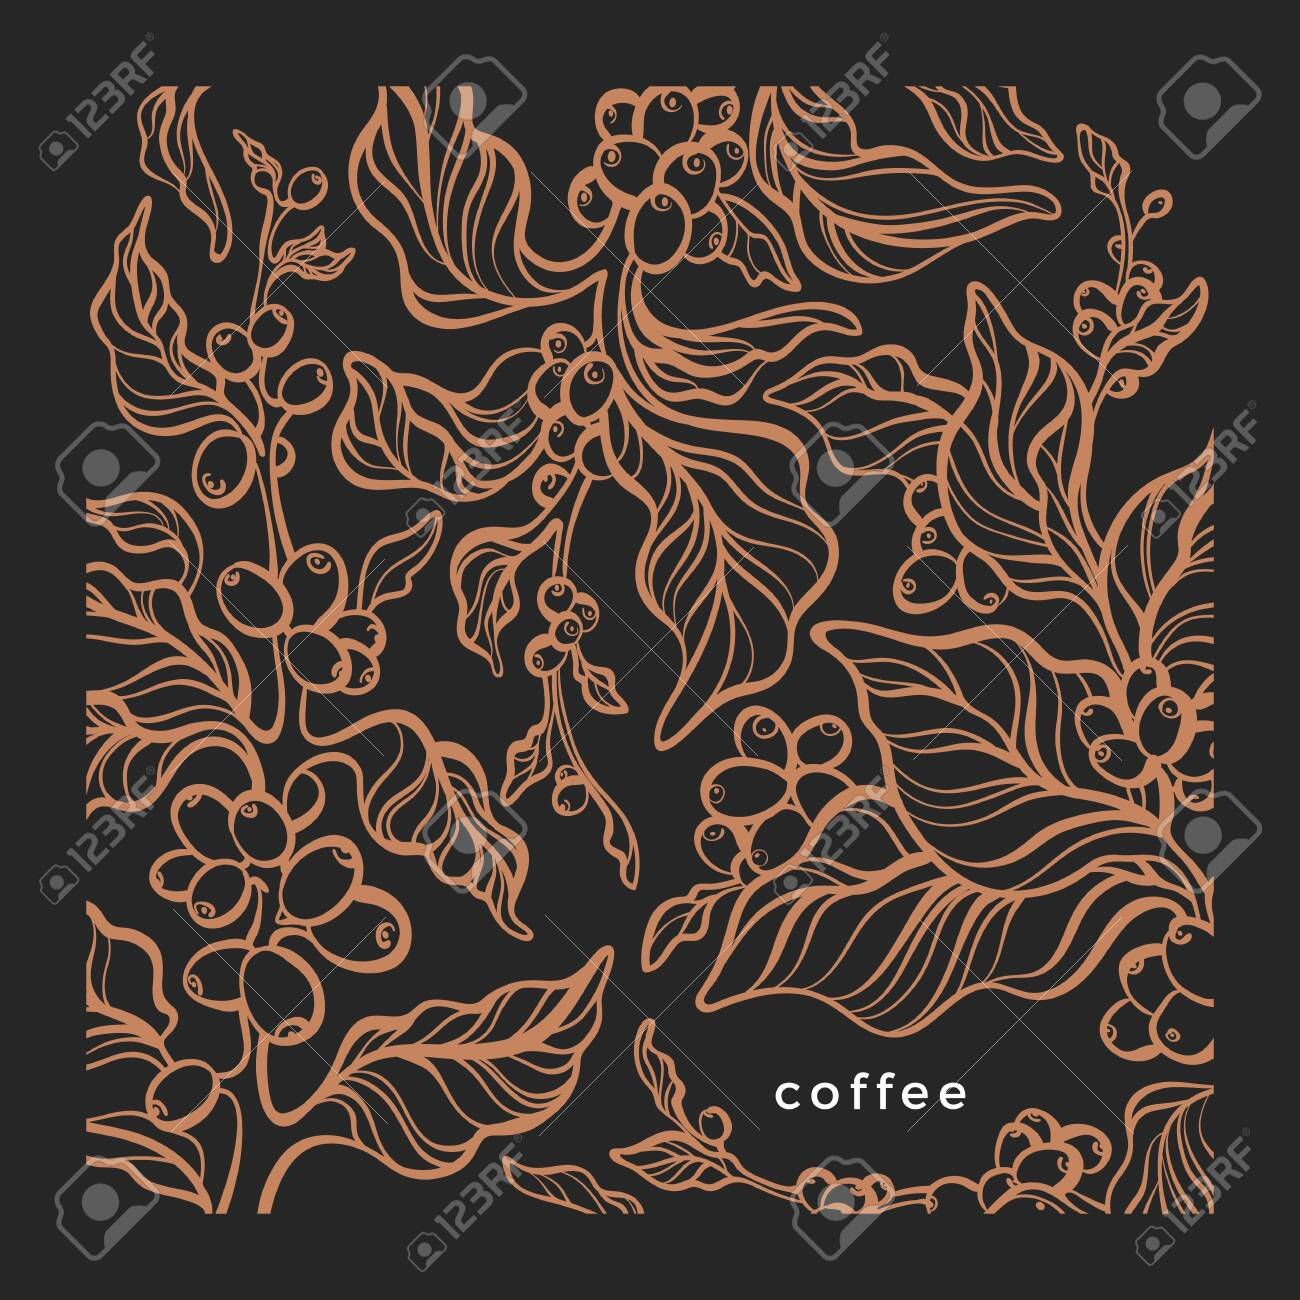 Coffee Background Vector Graphic Pattern Nature Tree Art Line Royalty Free Cliparts Vectors And Stock Illustration Image 141629675